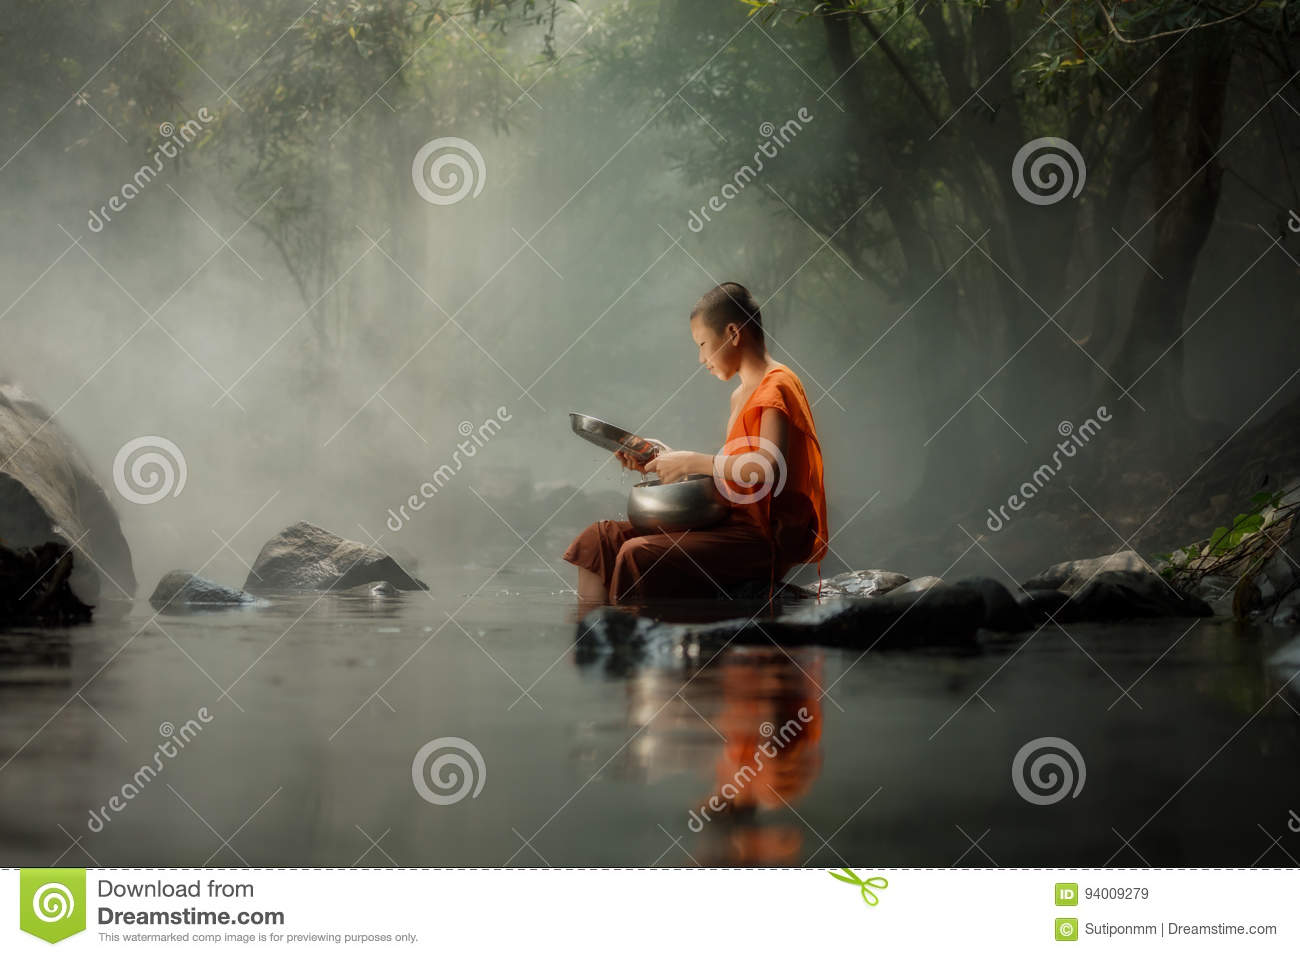 river forest buddhist personals The kammaṭṭhāna forest tradition of thailand (pali: kammaṭṭhāna [kəmːəʈːʰaːna] meaning place of work), commonly known in the west as the thai forest tradition, is a lineage of theravada buddhist monasticism, as well as the lineage's associated heritage of buddhist praxis.